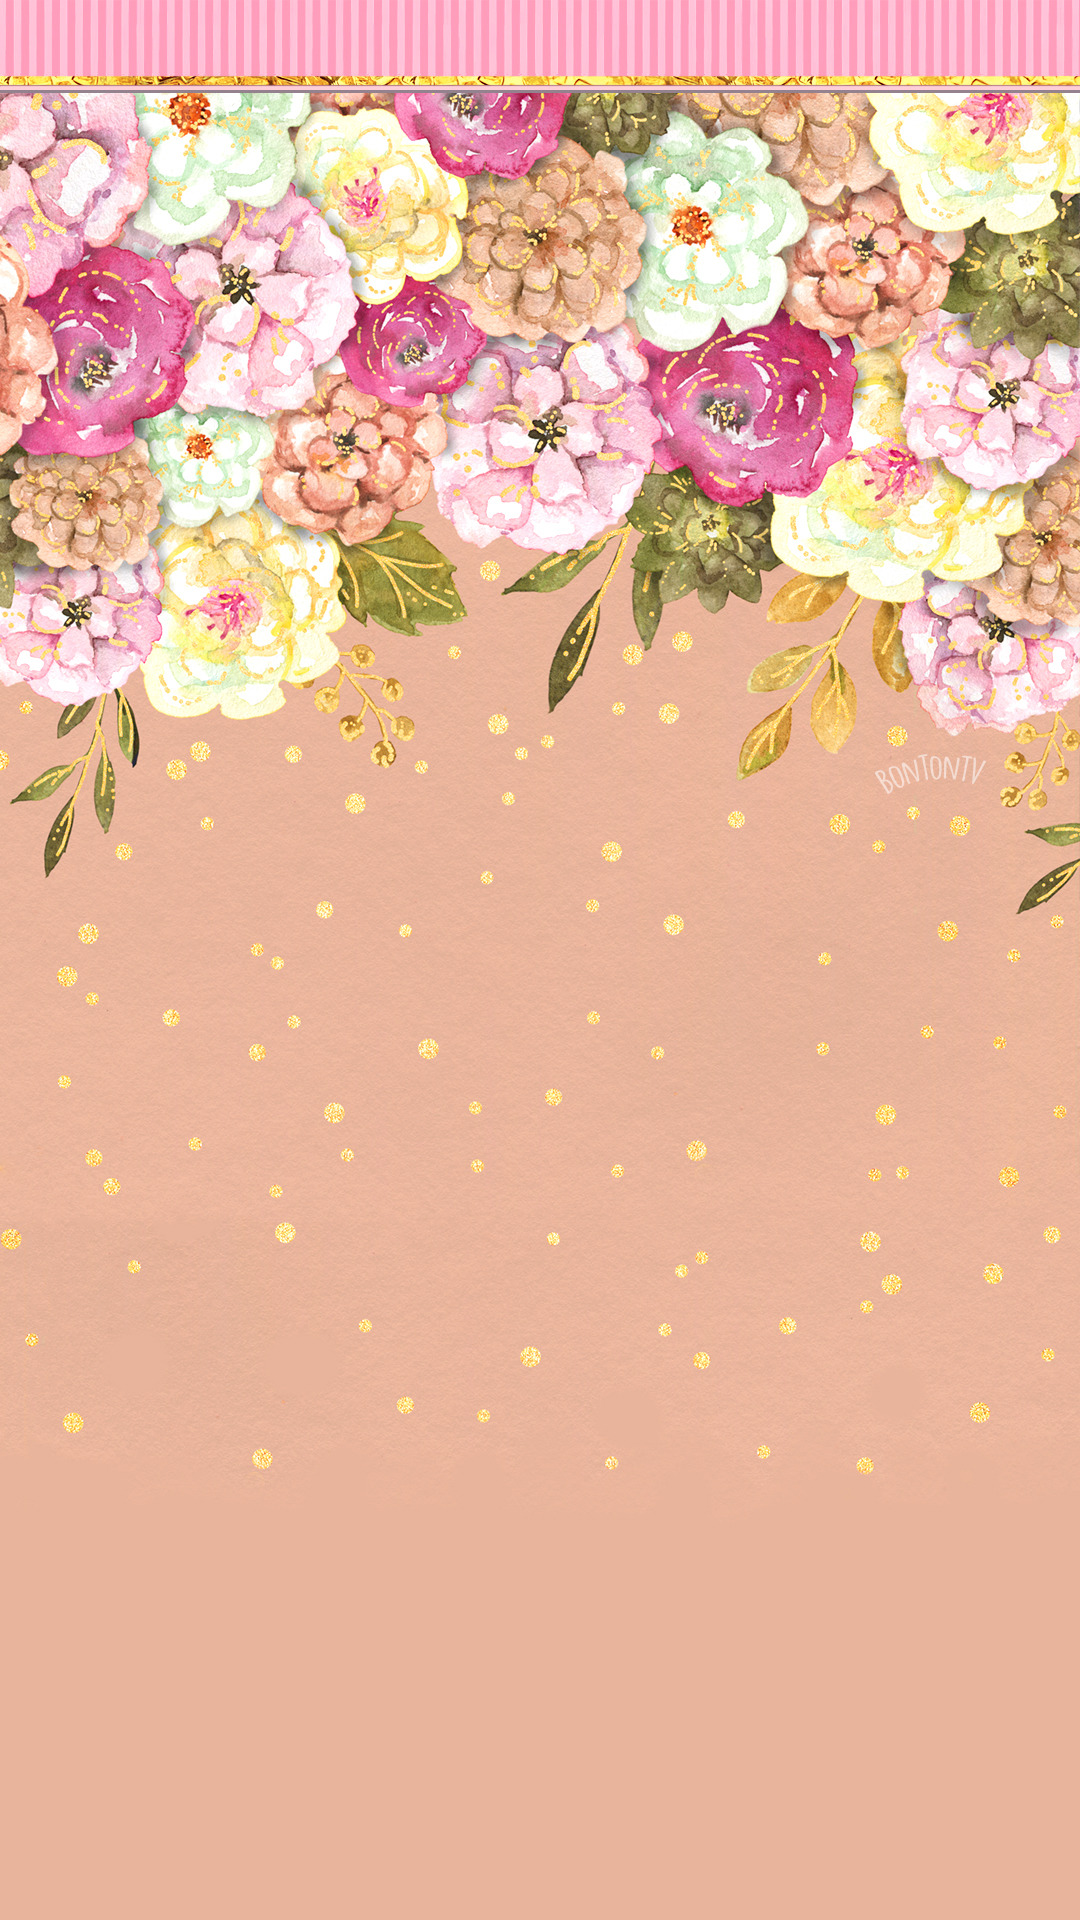 Phone Wallpapers Hd Flowers Watercolor Cute Glitter Background By Bonton Tv Beautiful Wallpapers For Iphone Pretty Wallpapers Aesthetic Iphone Wallpaper